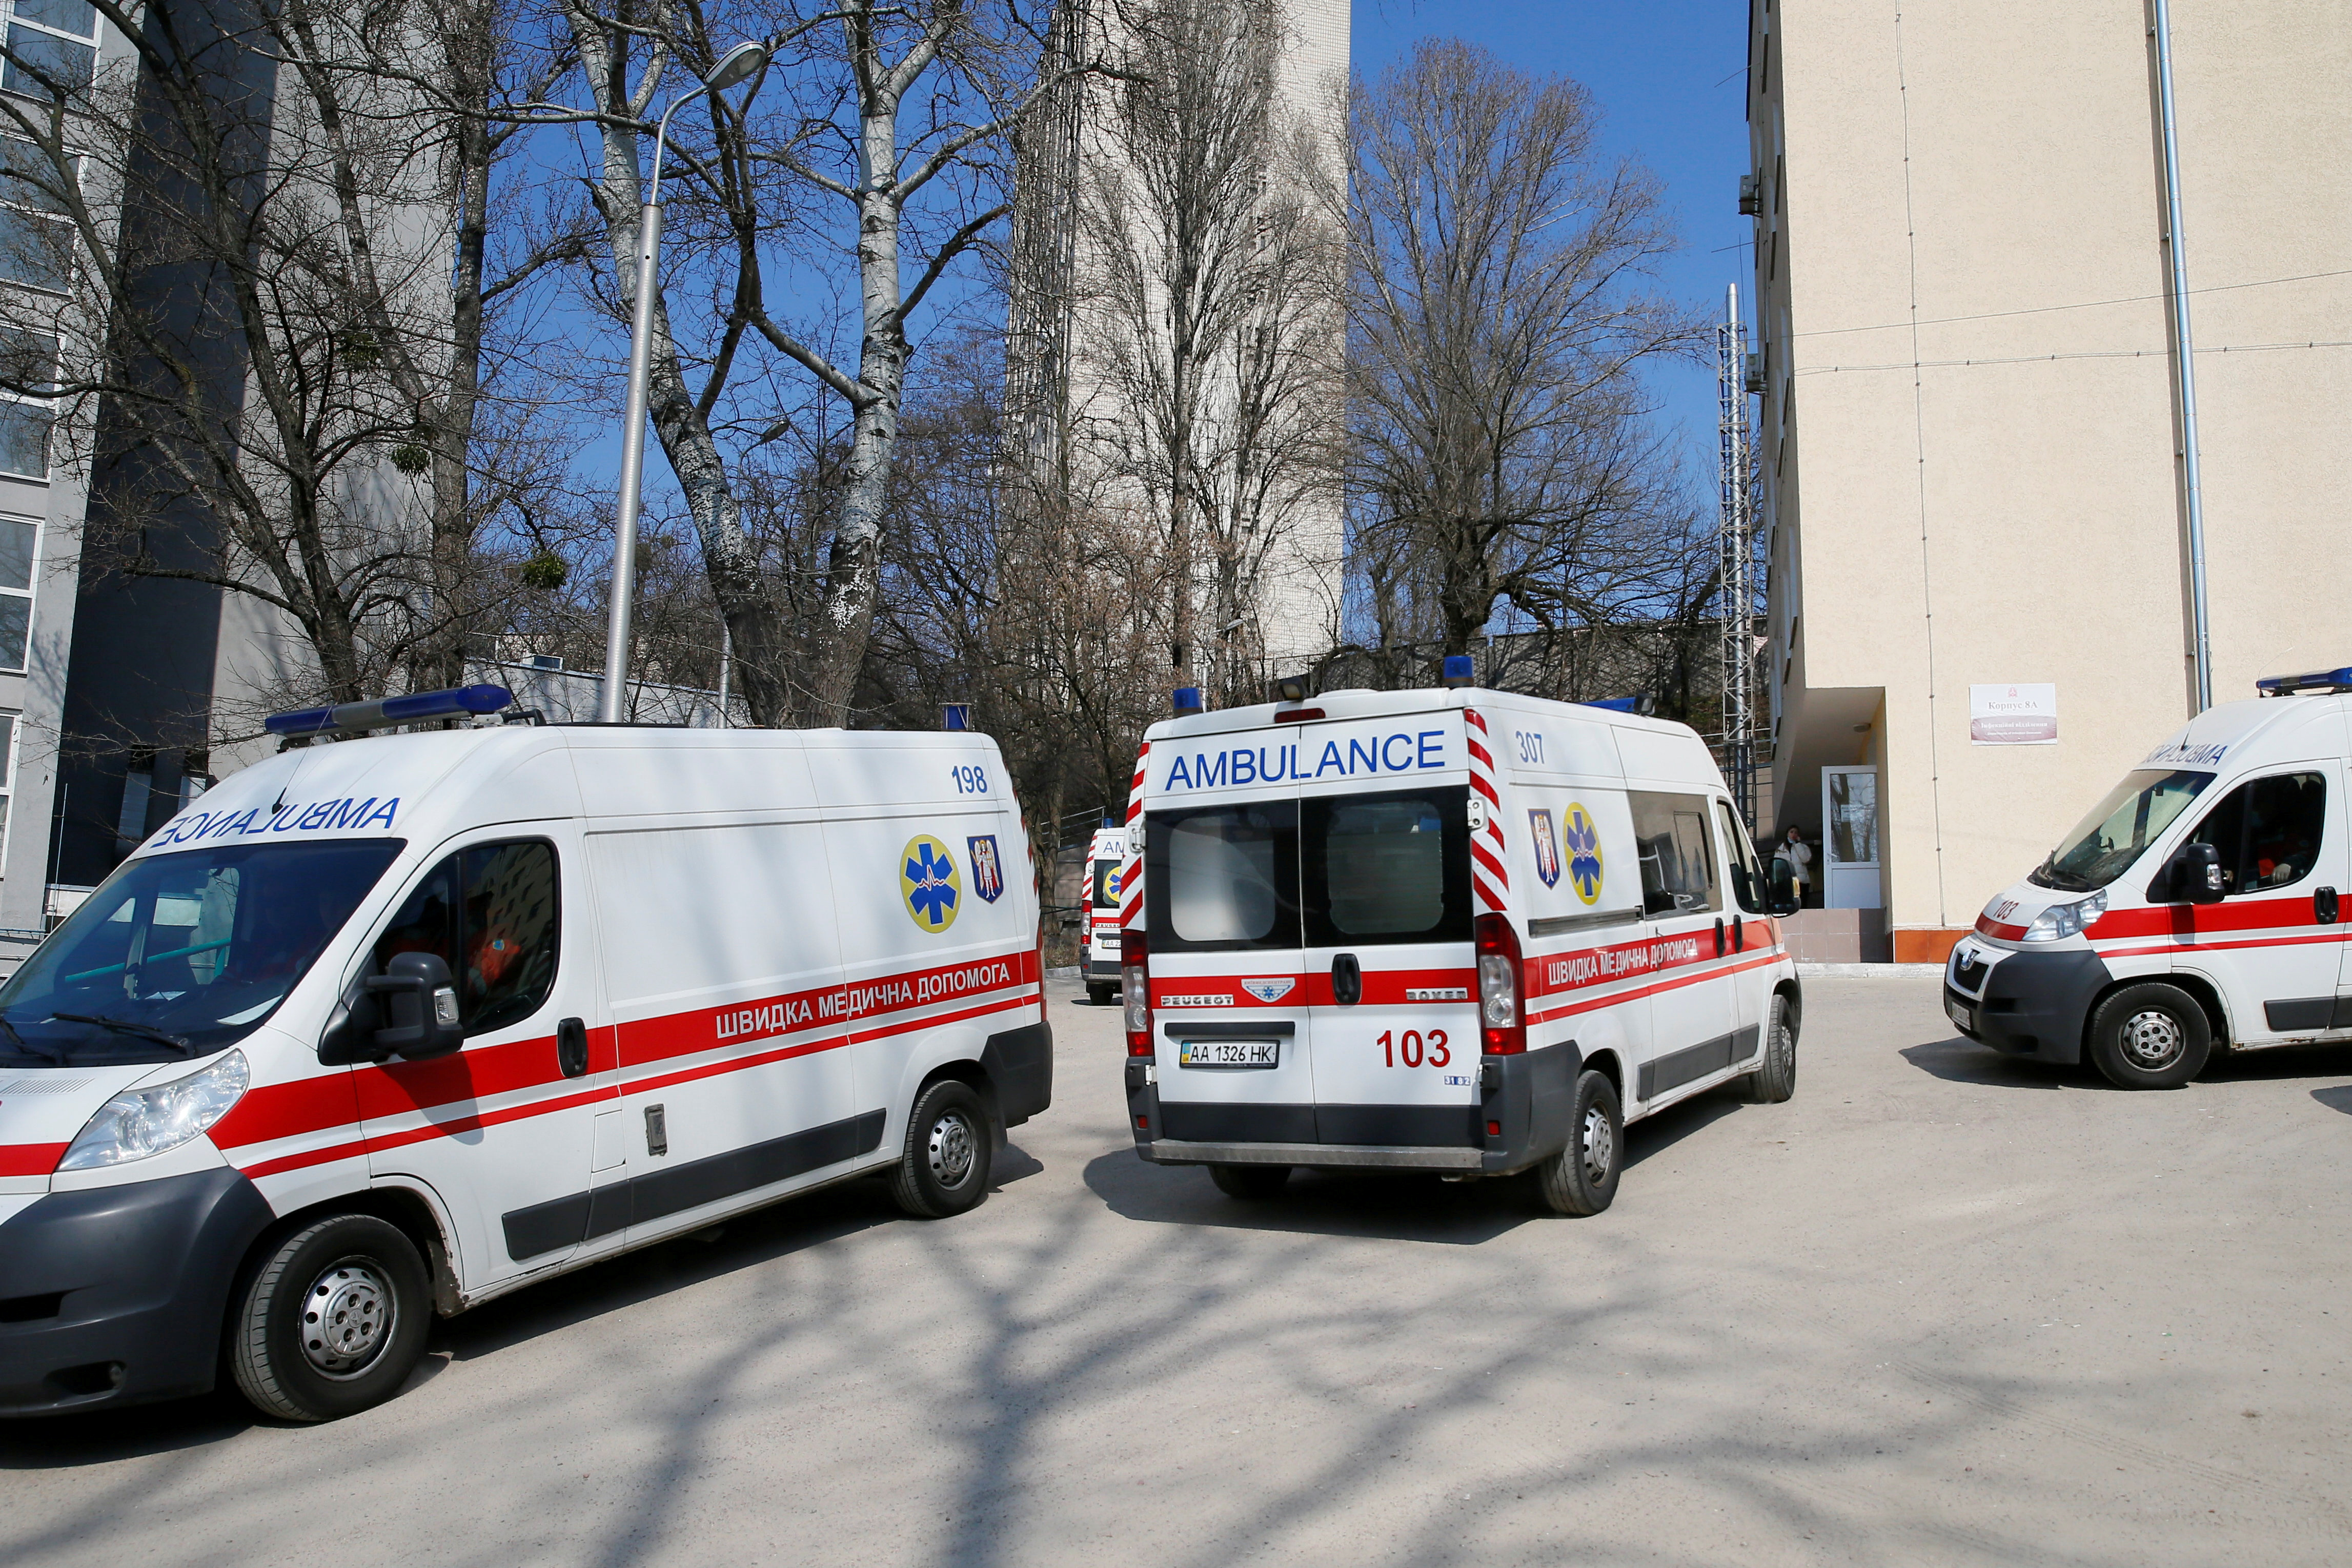 Ambulances with COVID-19 patients wait in the queue at a hospital for people infected with coronavirus disease in Kyiv, Ukraine March 30, 2021.  REUTERS/Gleb Garanich